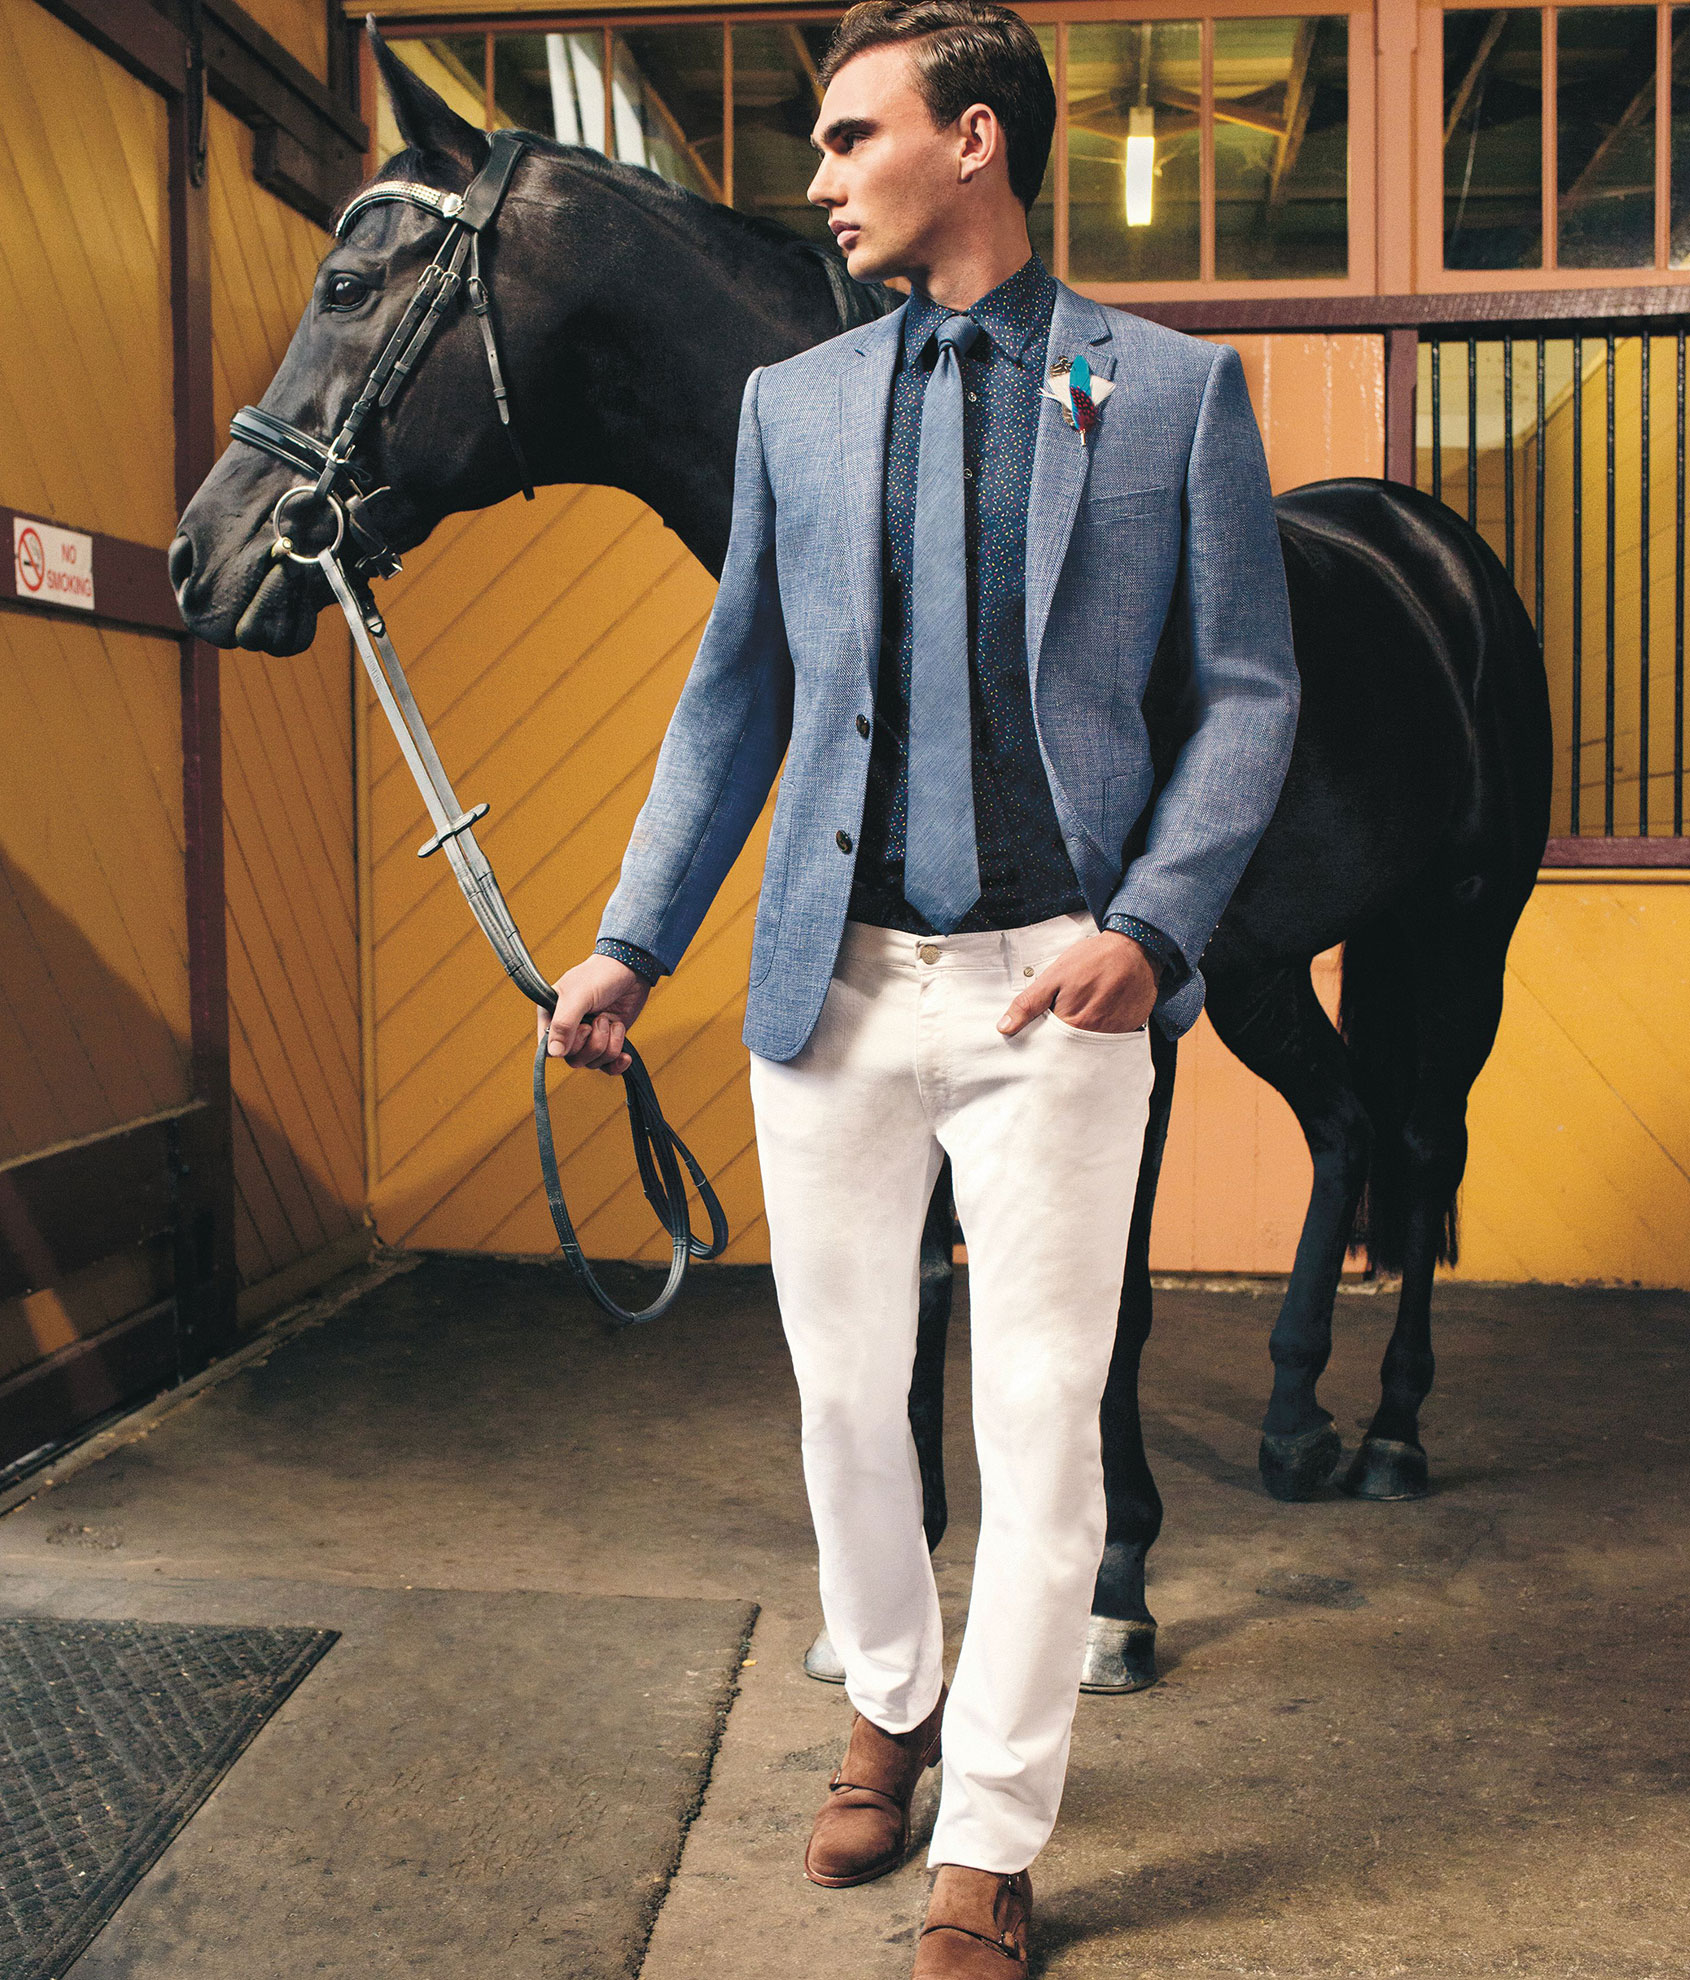 Stylist's Spring Racing Fashion Guide for Men